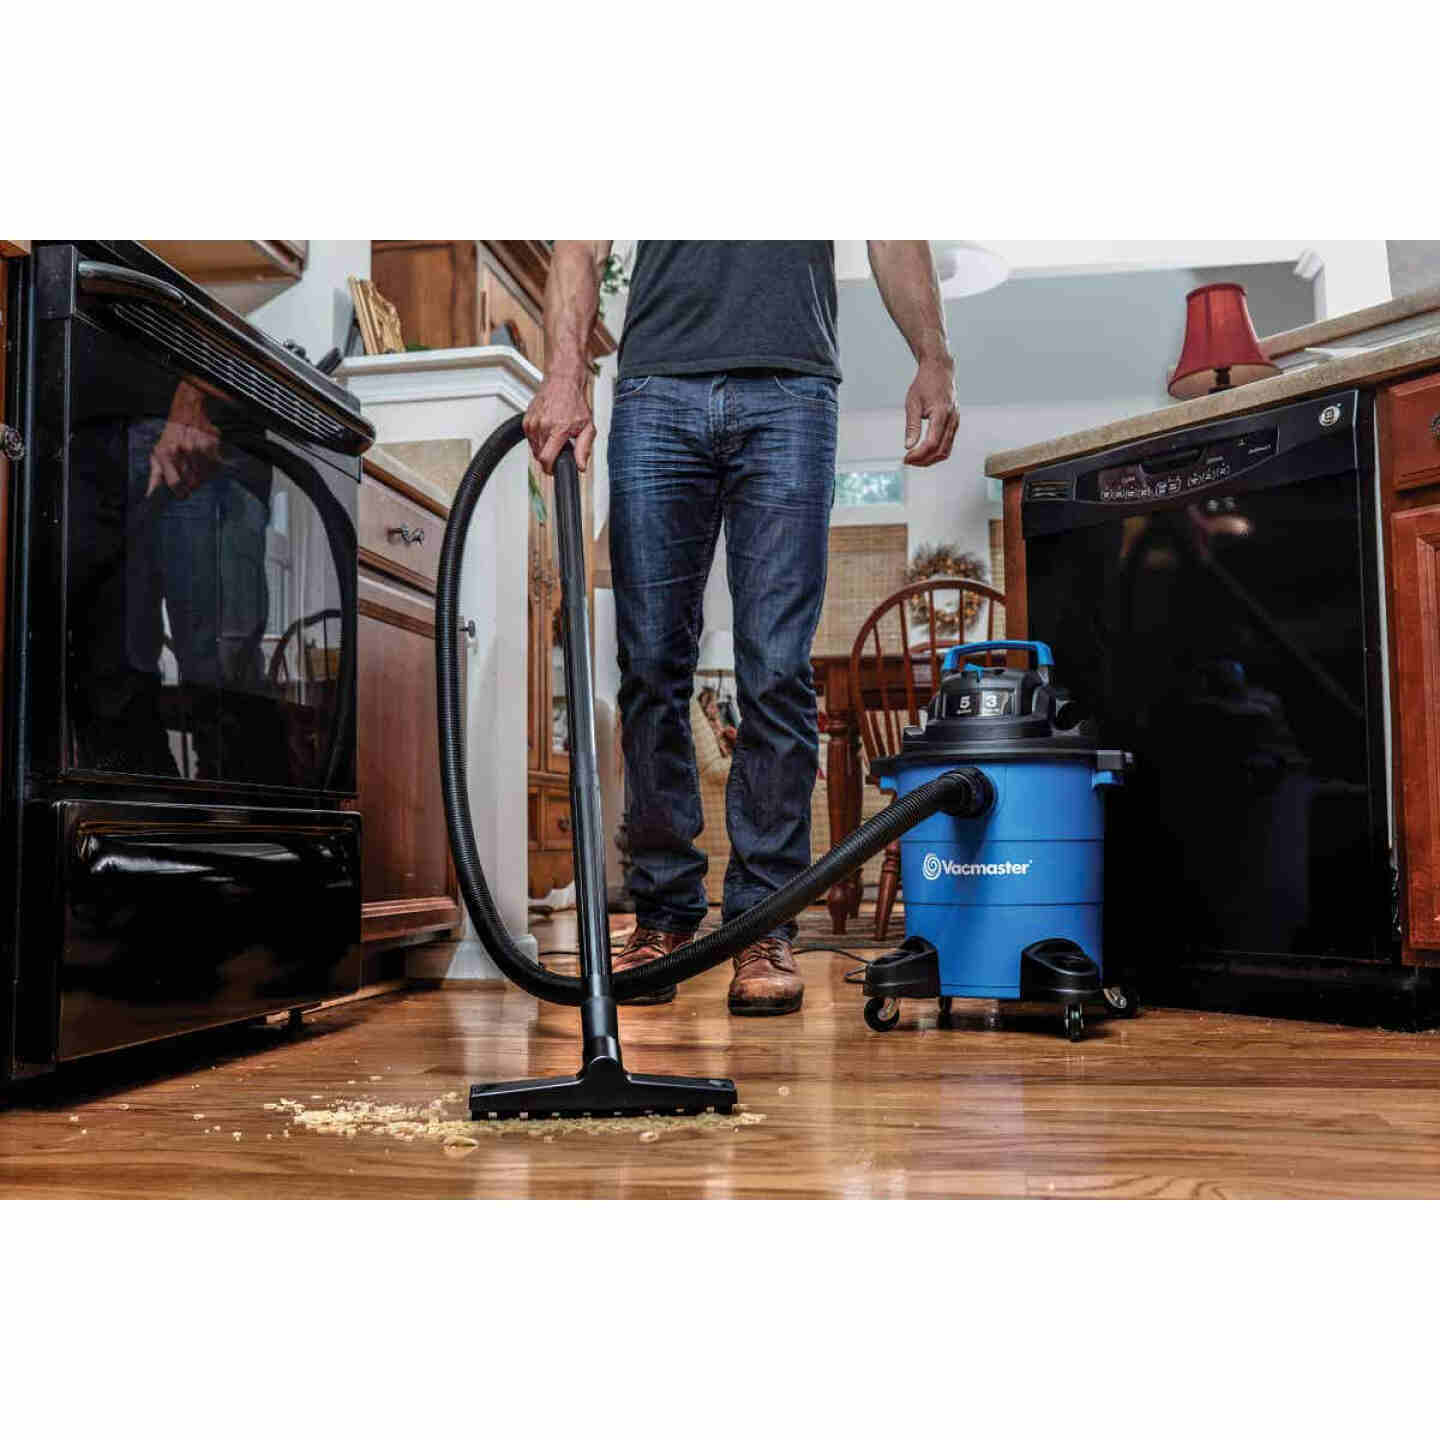 Vacmaster 5-Gallon 3.0 Peak HP Wet/Dry Vacuum Image 2